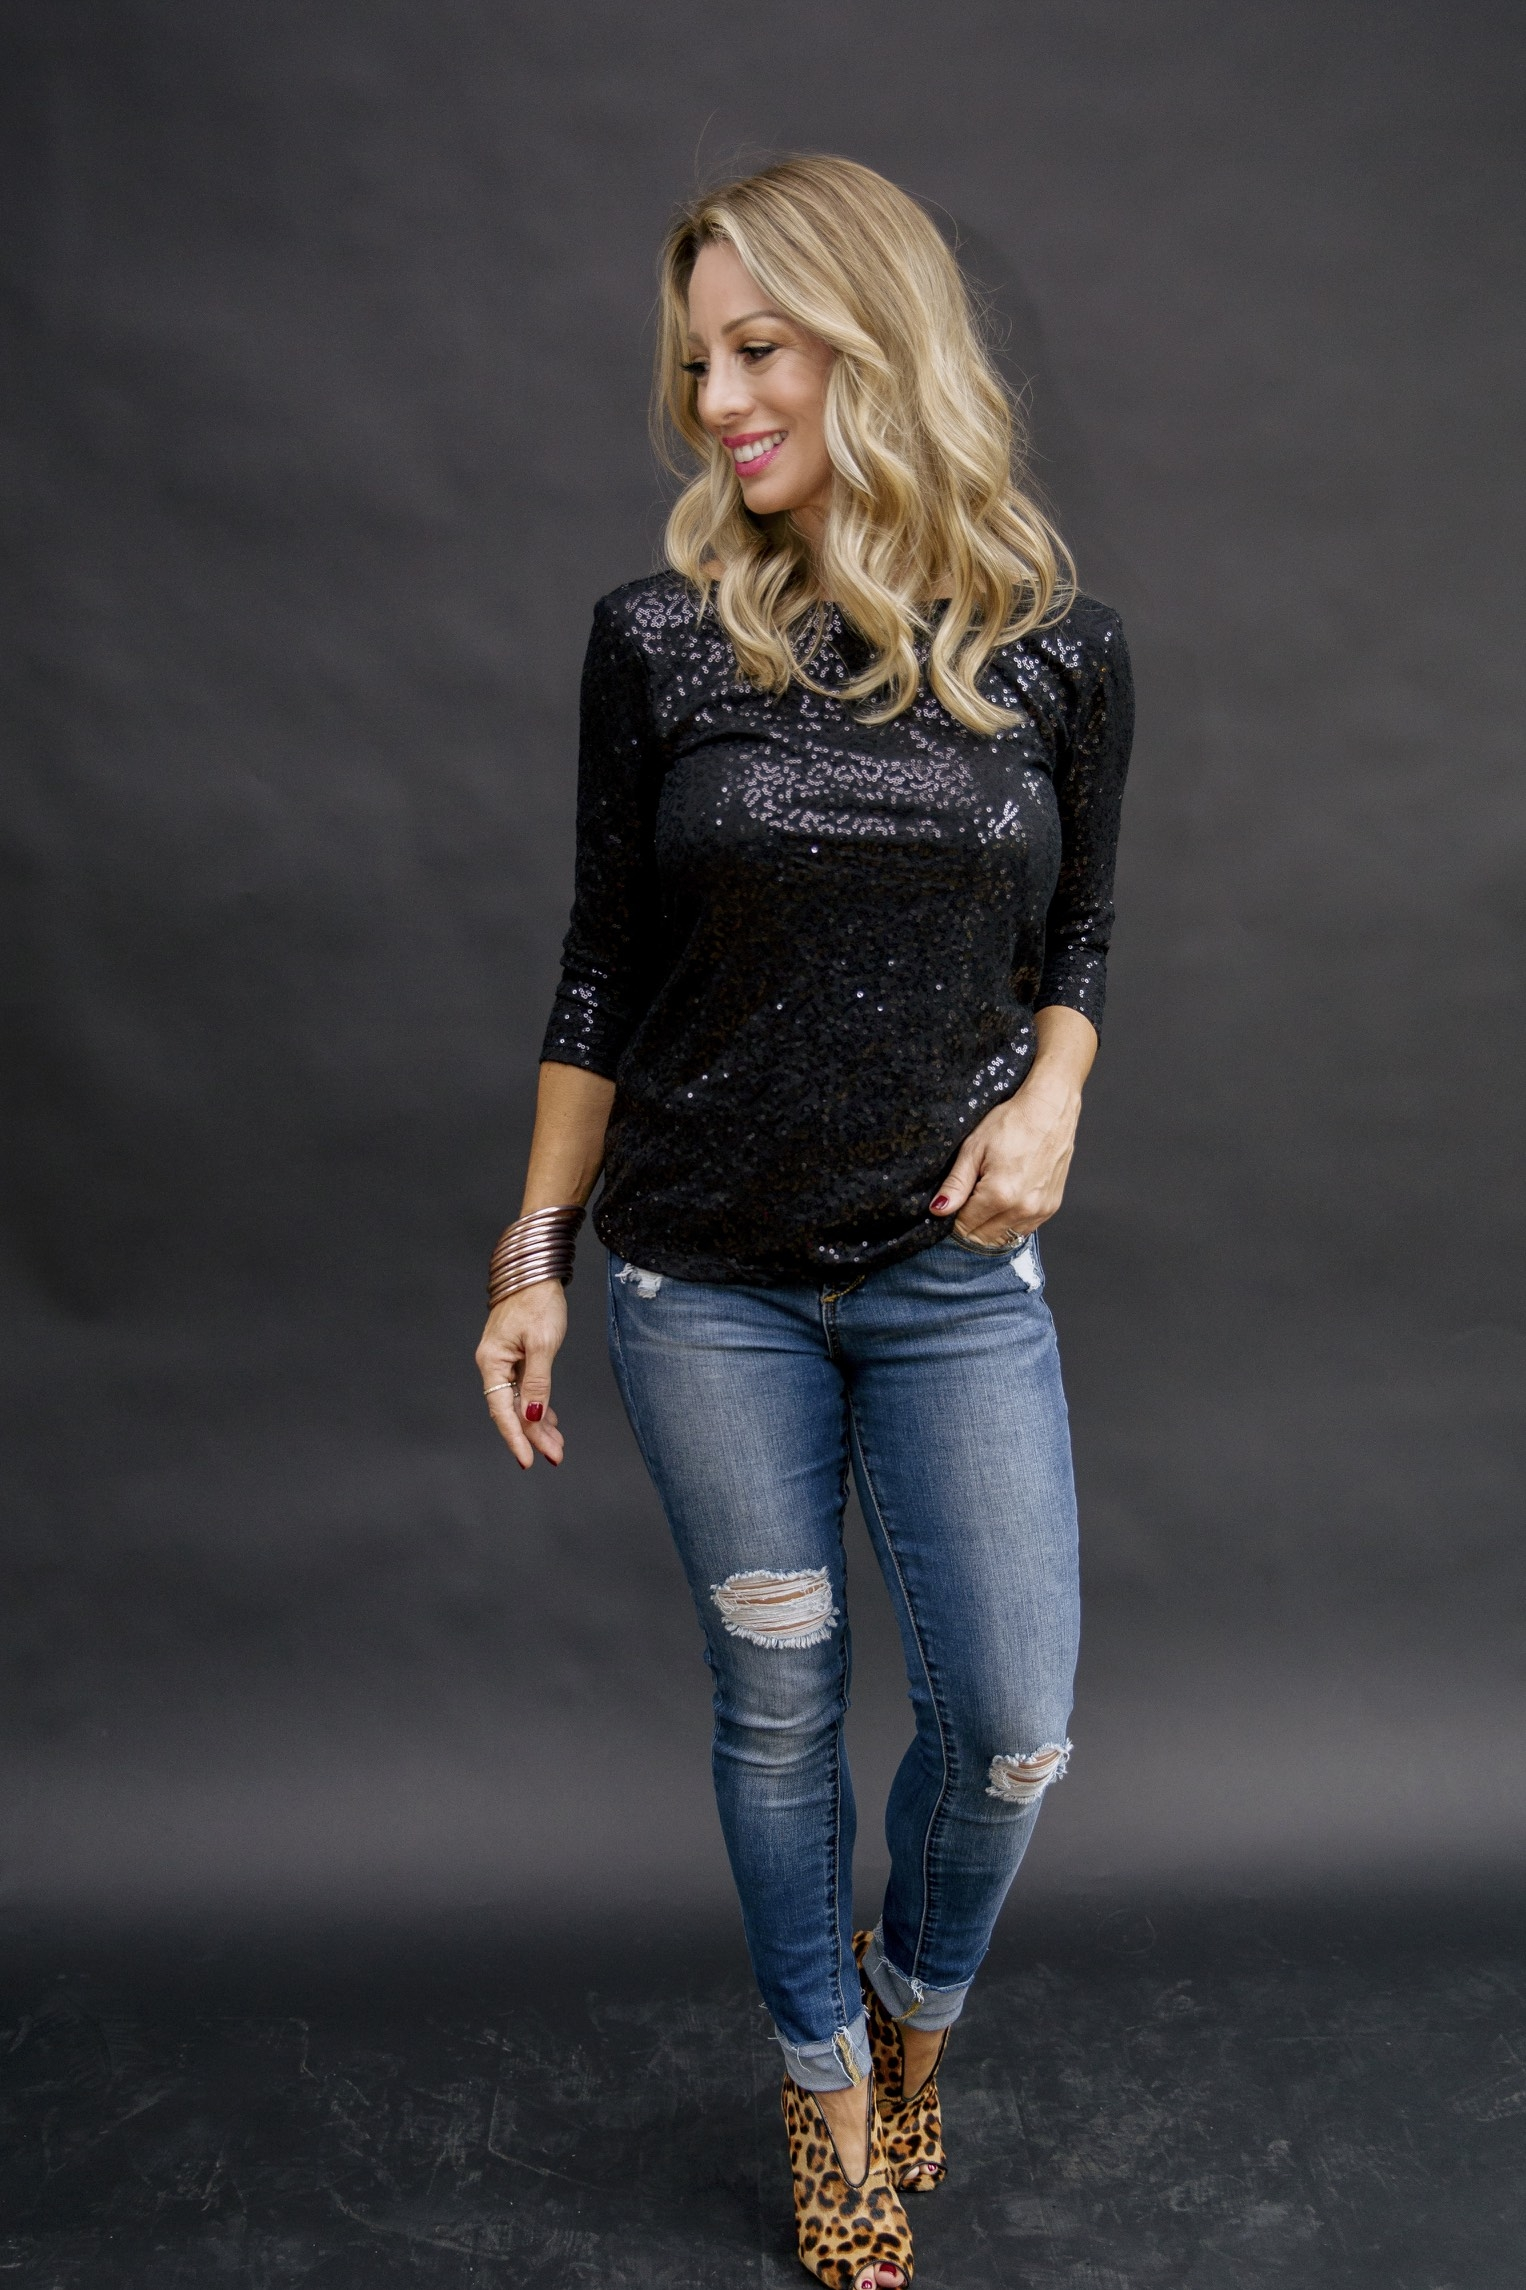 holiday outfit ideas from the gibson glam collect - the megan sequin top in black